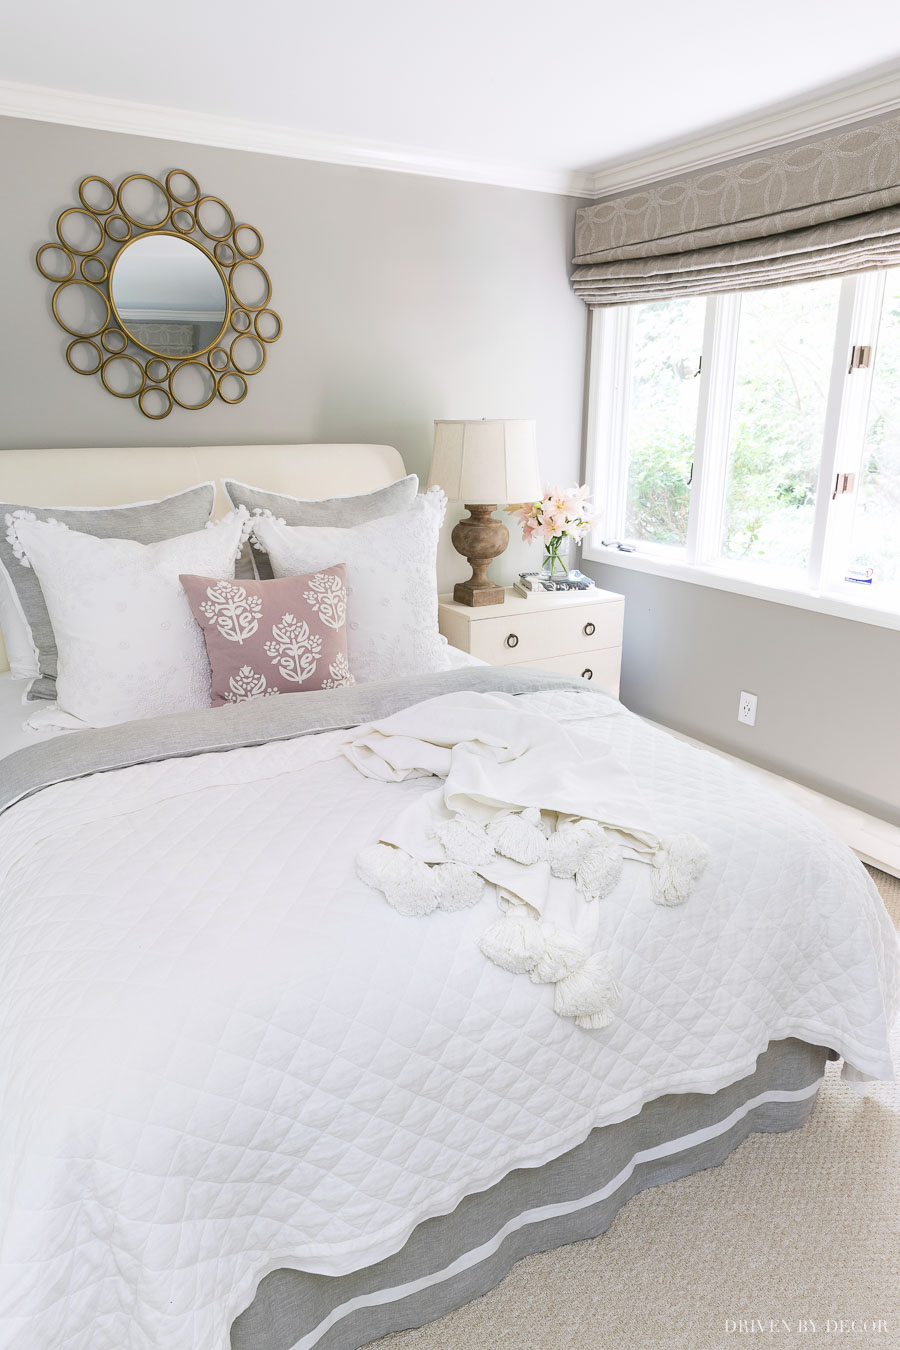 The perfect quilt and duvet for creating a beautiful neutral bed! Loving that tassel throw too!